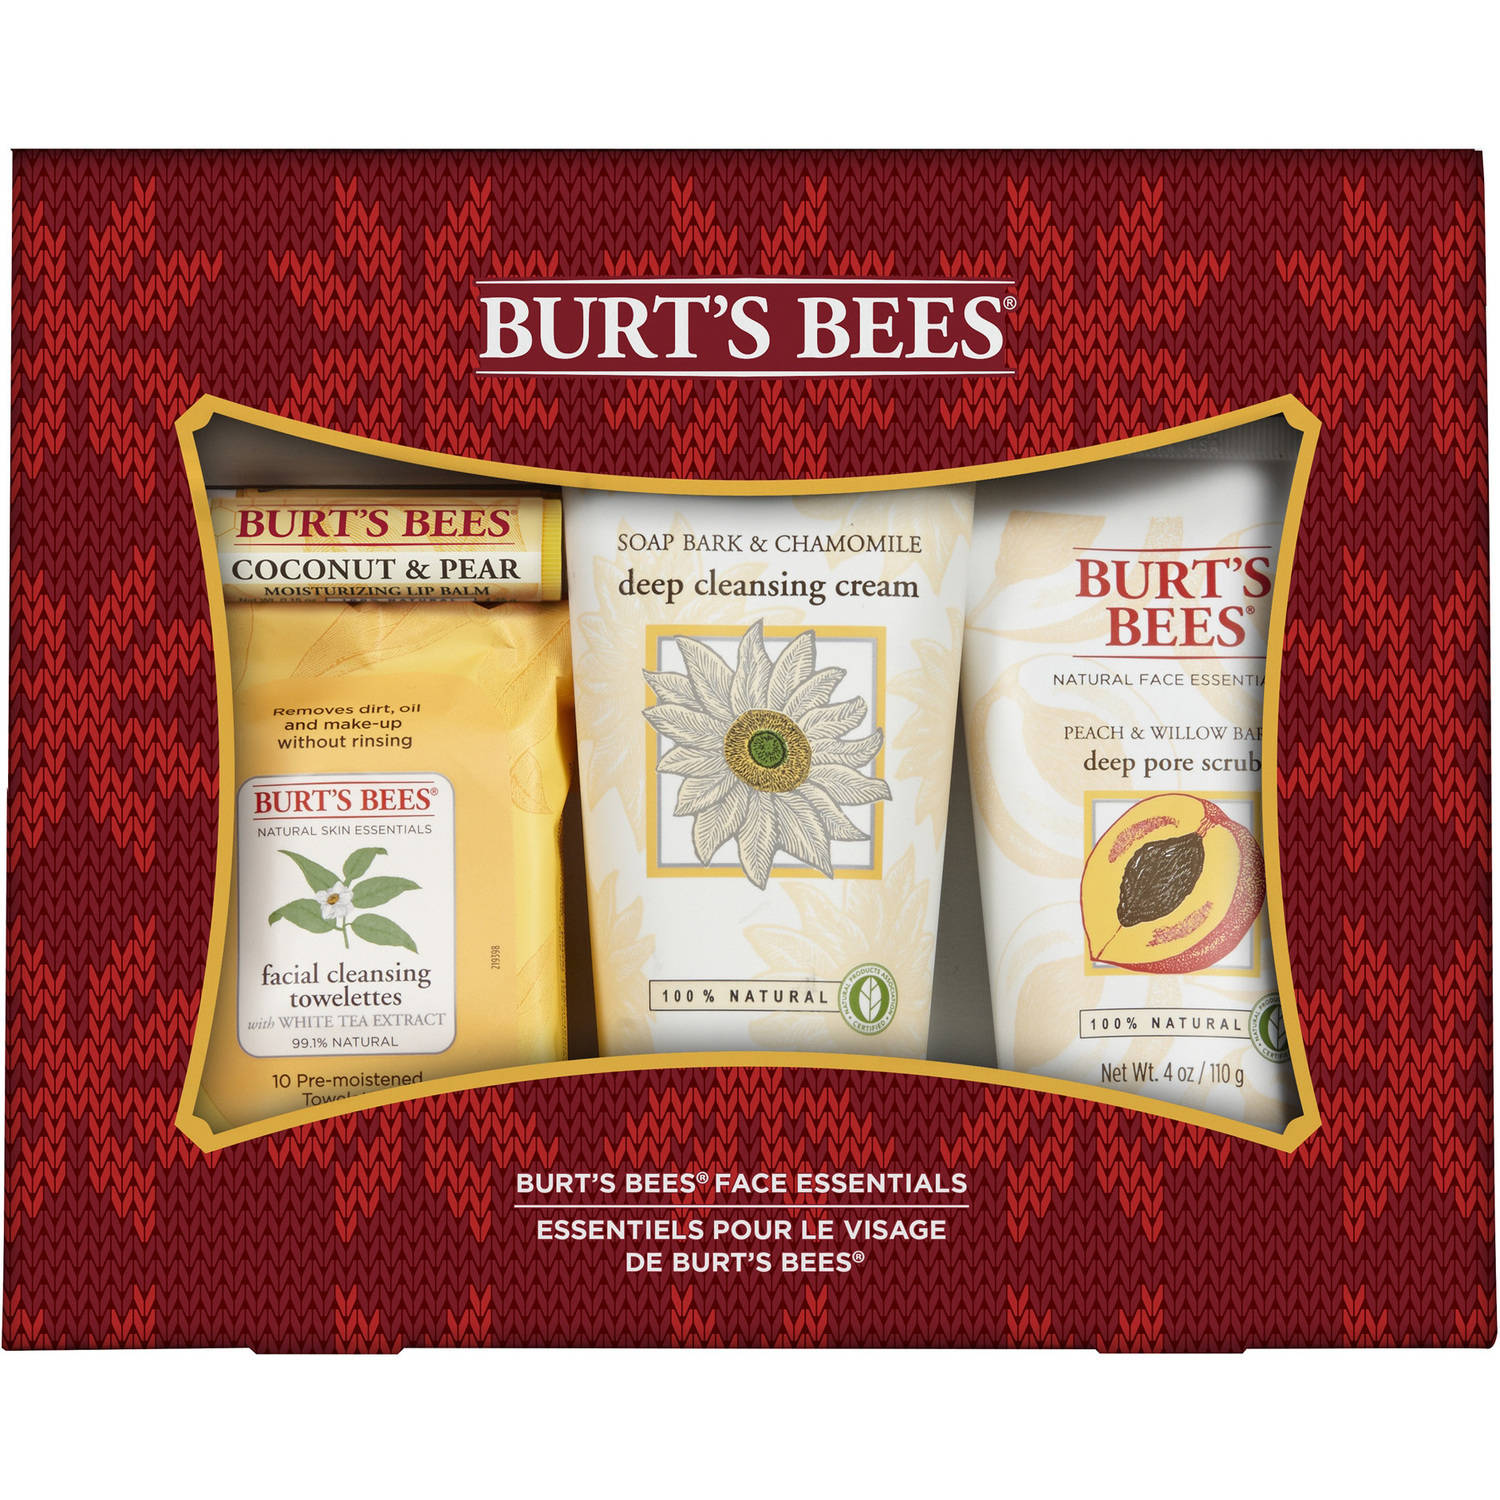 Burt's Bees Face Essentials Holiday Gift Set, 4 pc